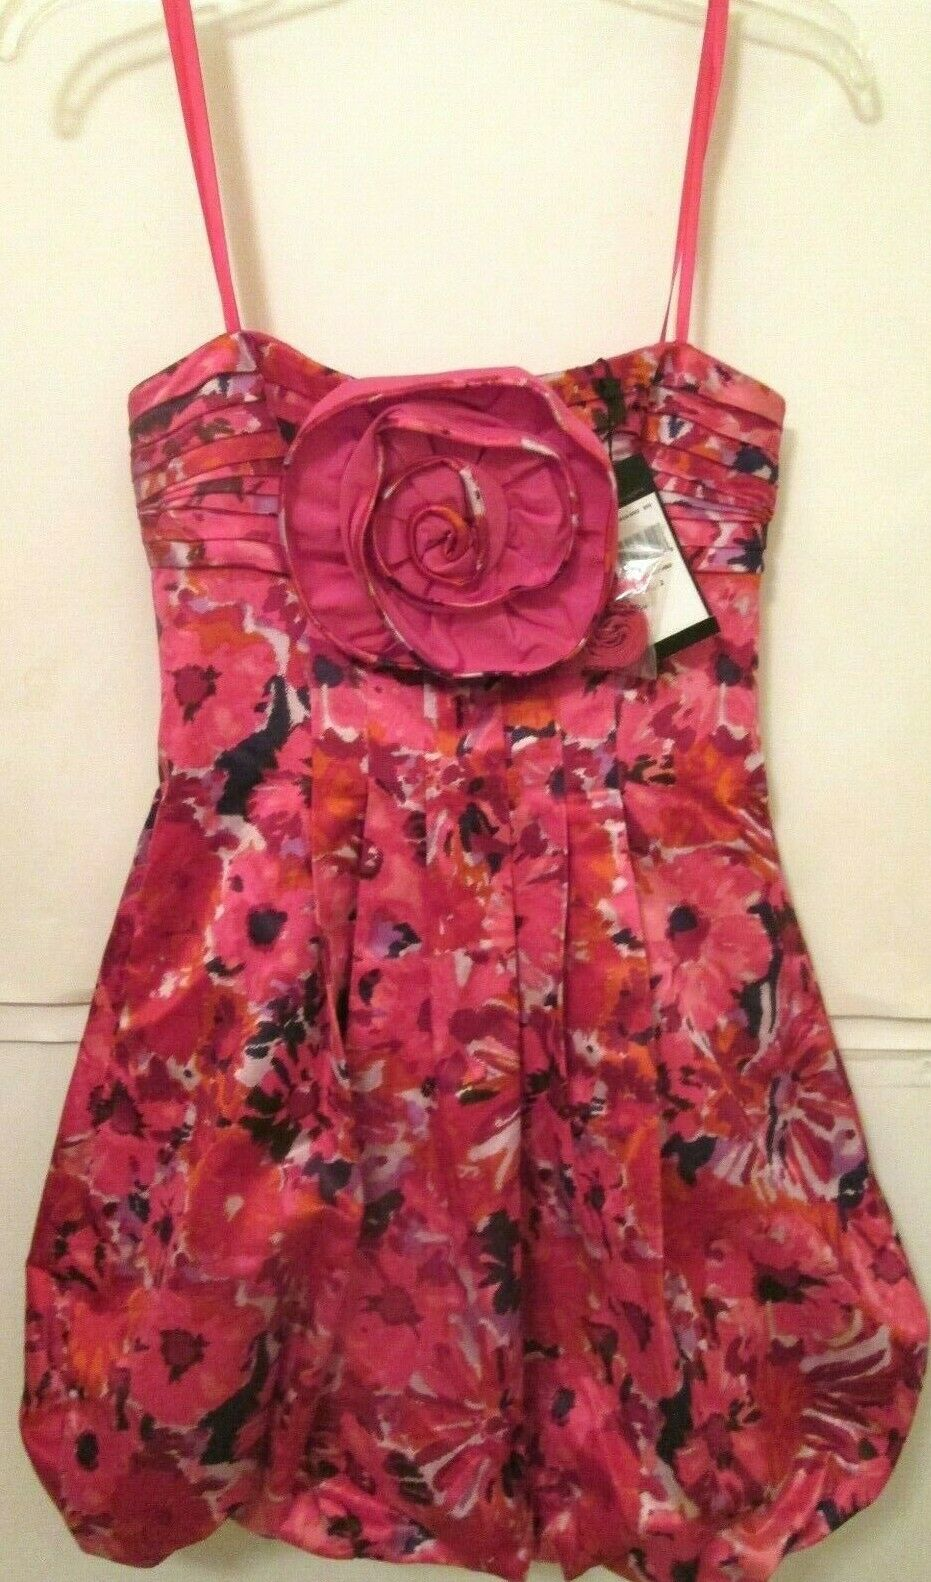 BCBG MAXAZRIA Ladies Size 2 Pink Floral Begonia Combo Strapless Dress  Nwts